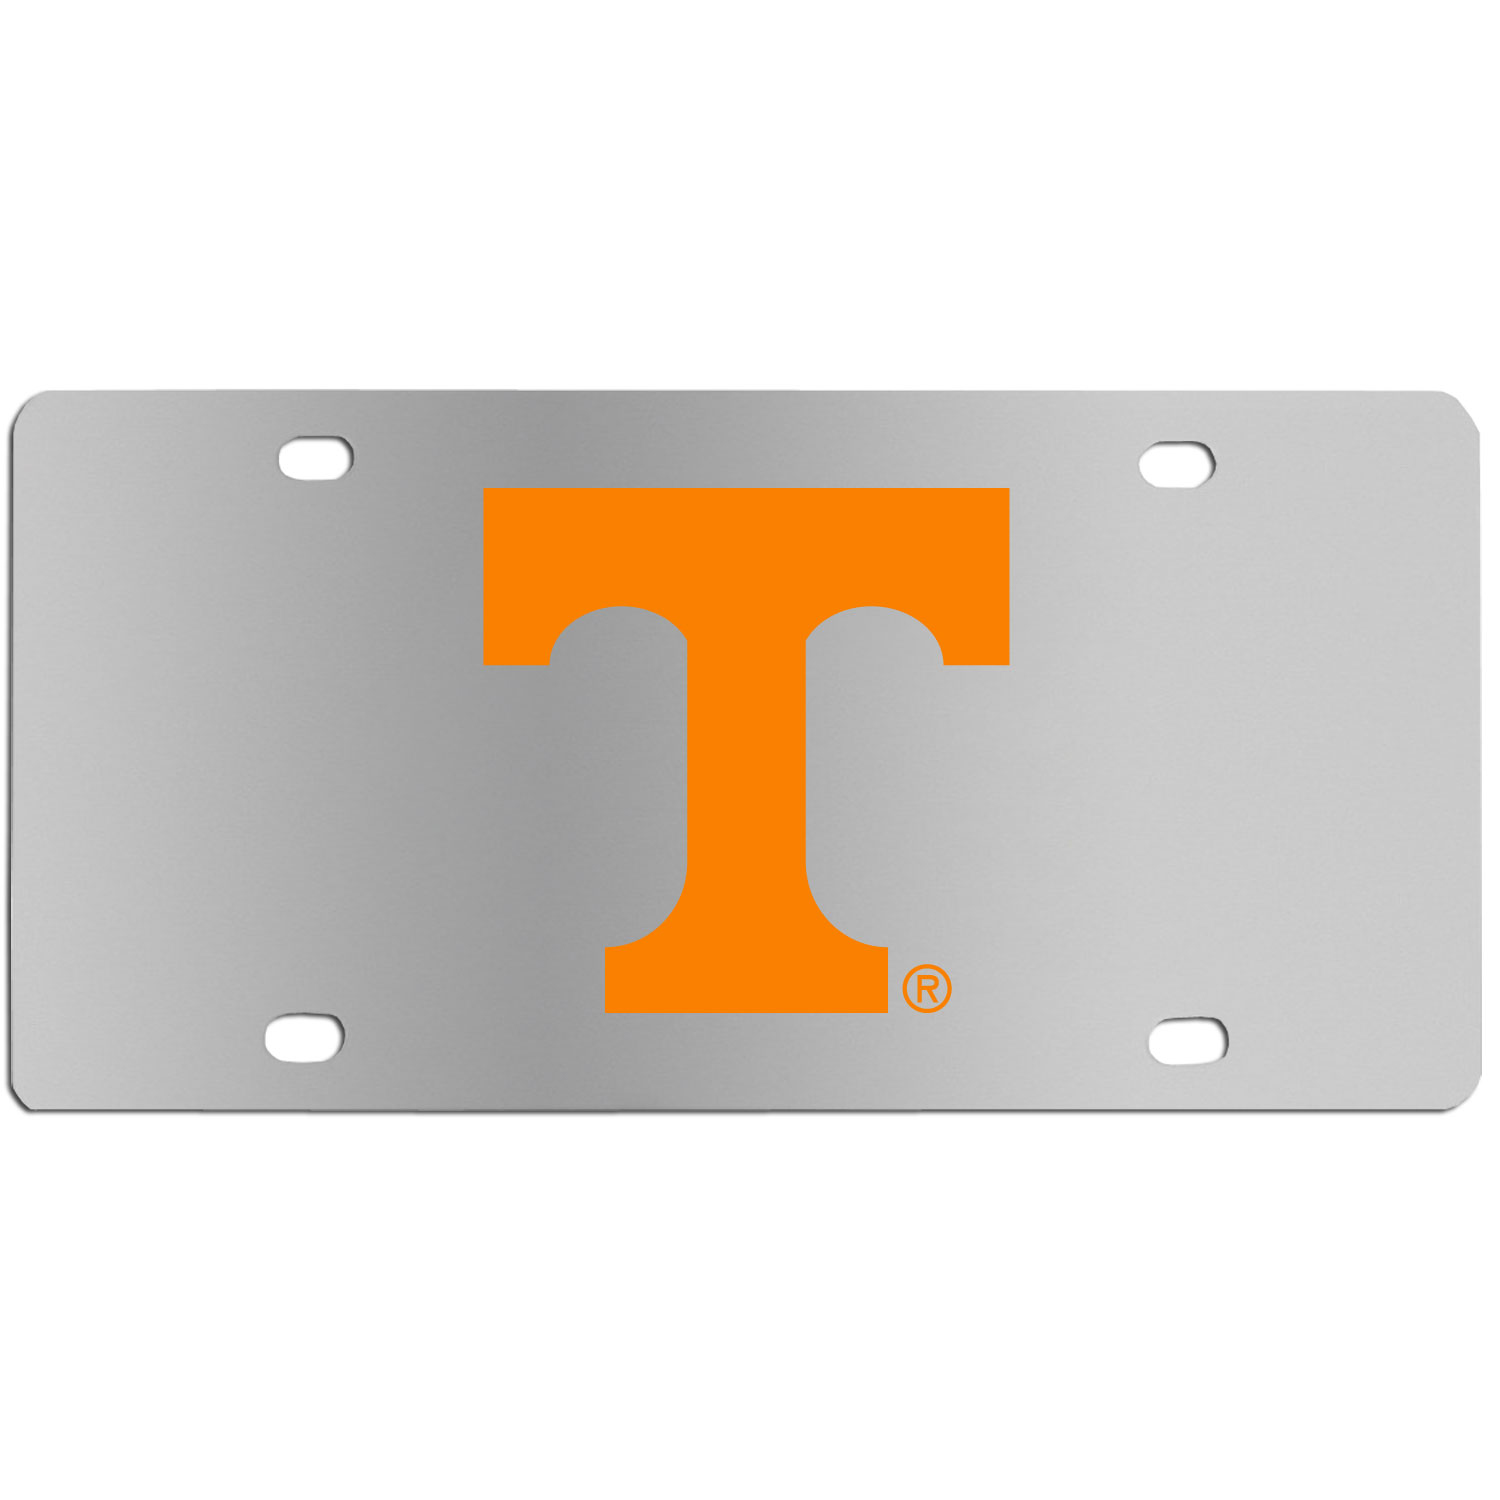 Tennessee Volunteers Steel License Plate Wall Plaque - This high-quality stainless steel license plate features a detailed team logo on a the polished surface. The attractive plate is perfect for wall mounting in your home or office to become the perfect die-hard Tennessee Volunteers fan decor.